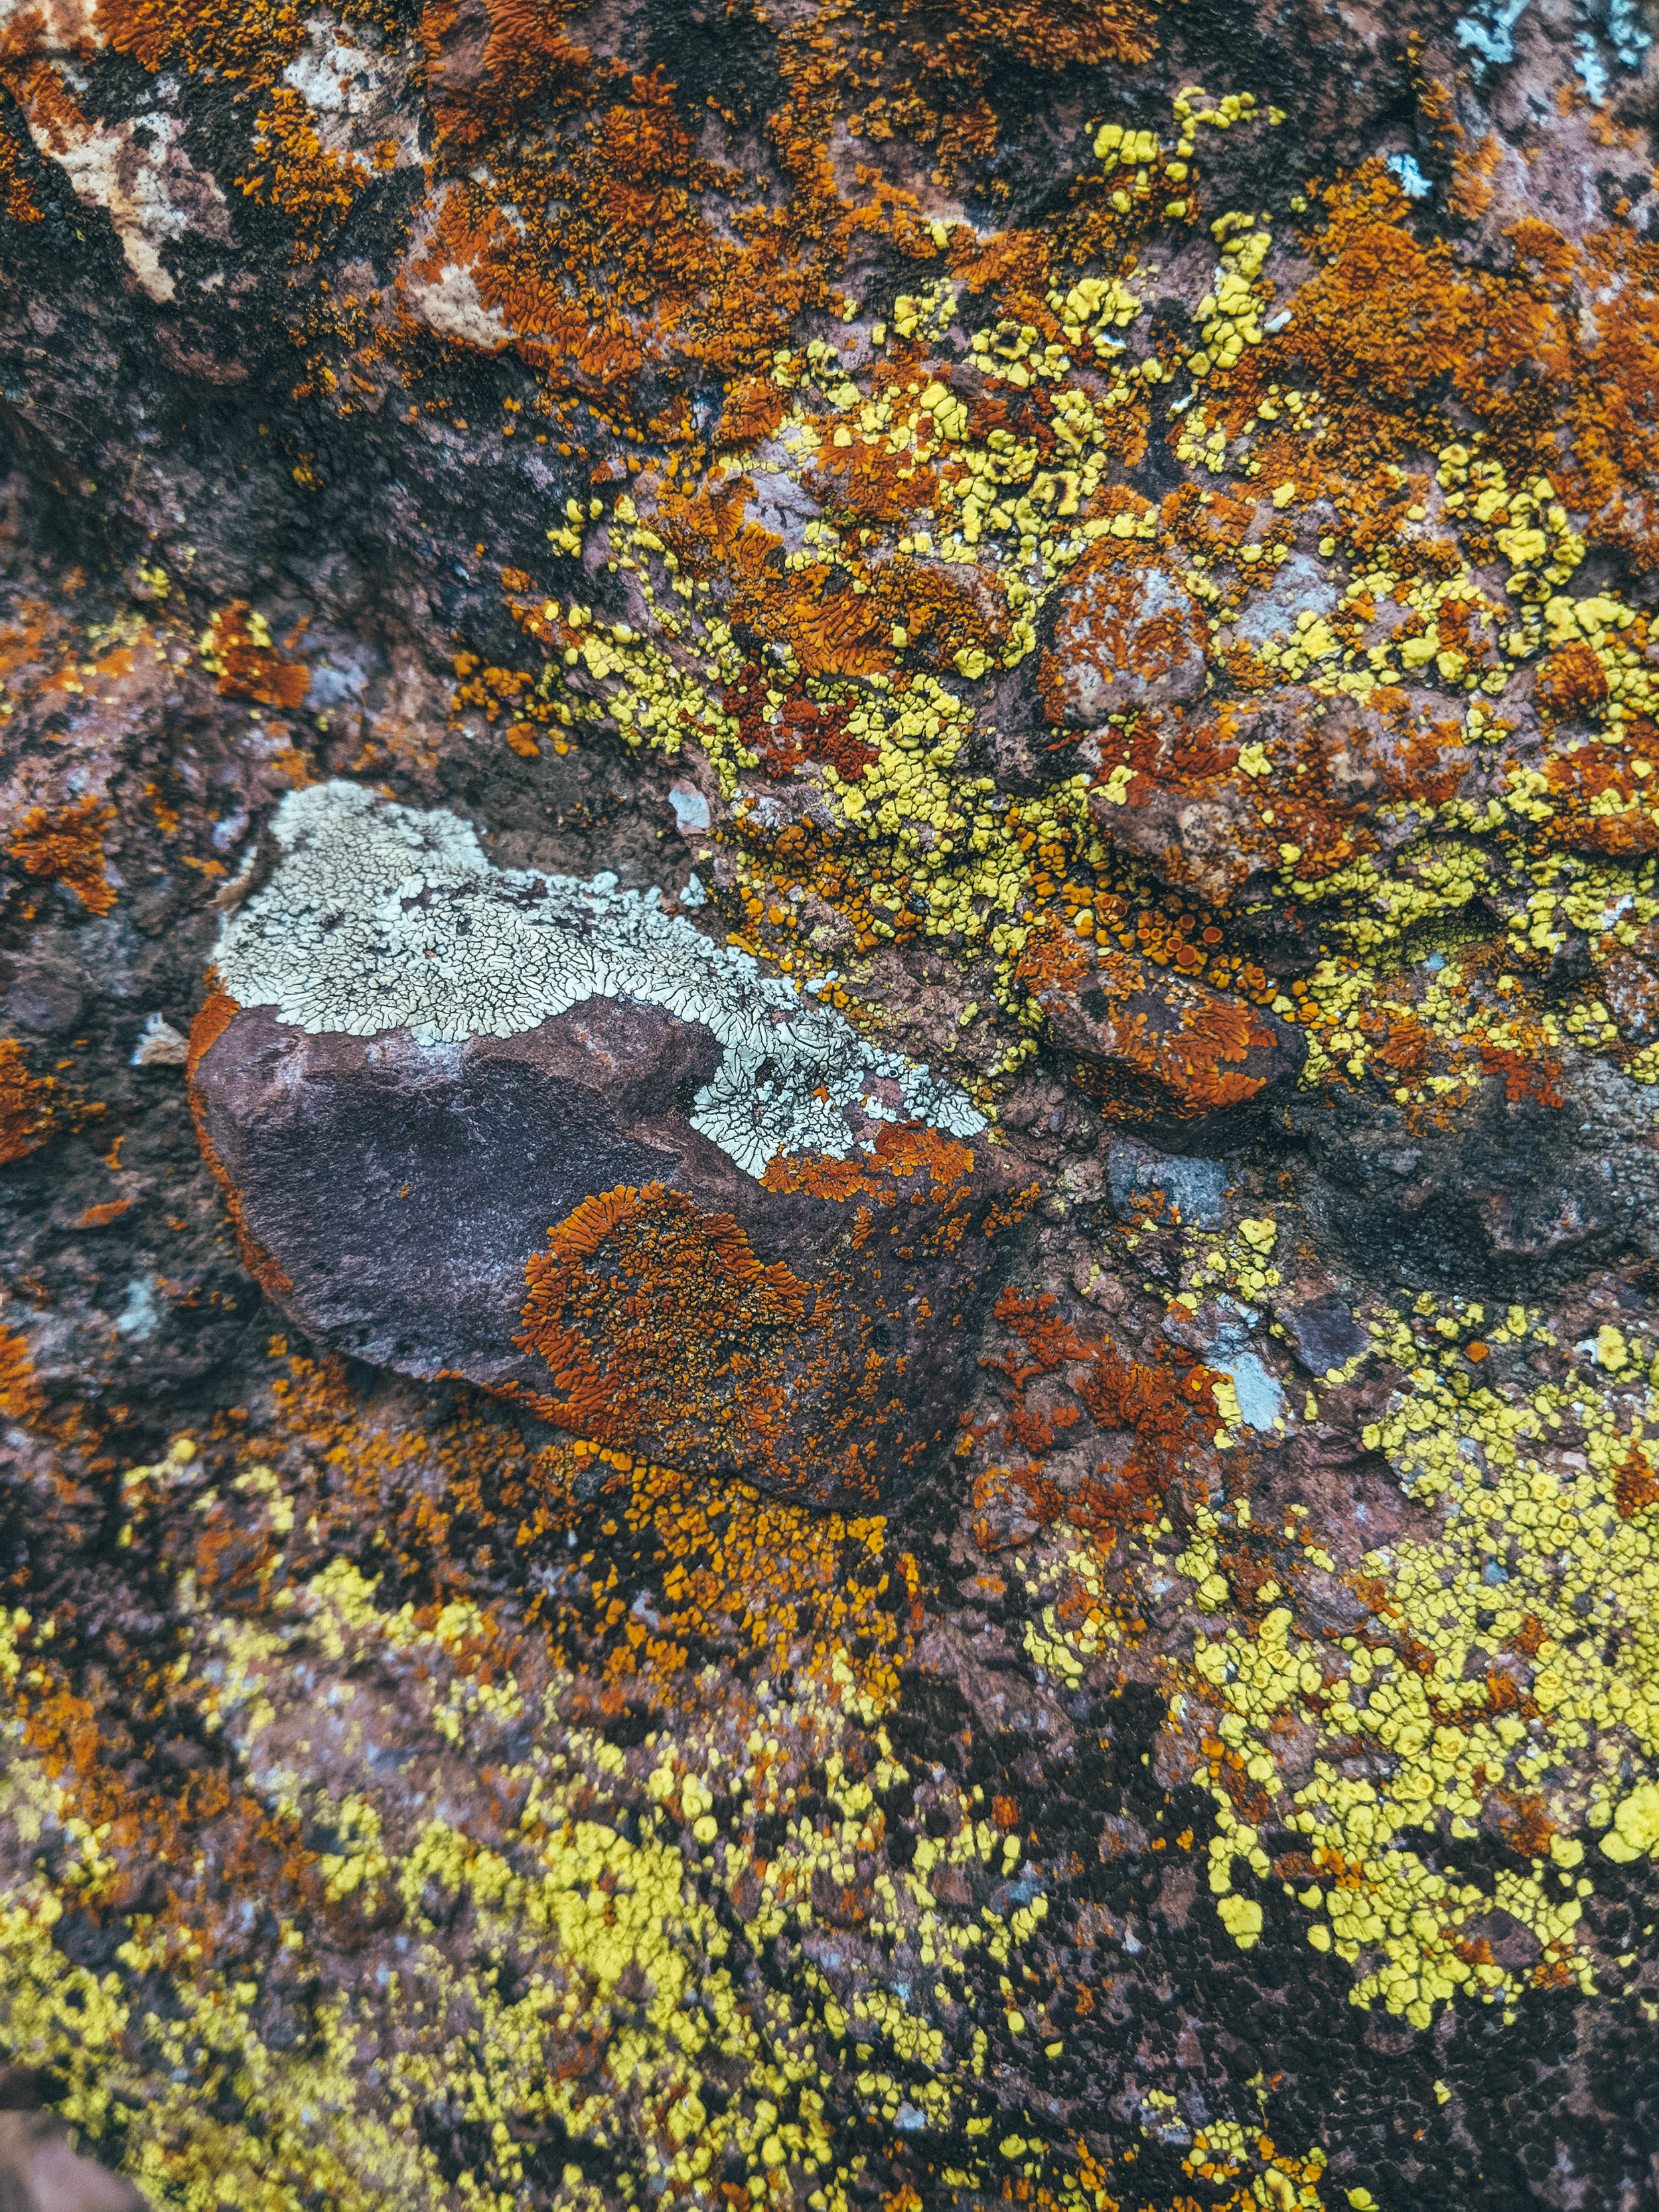 The lichen (I think)